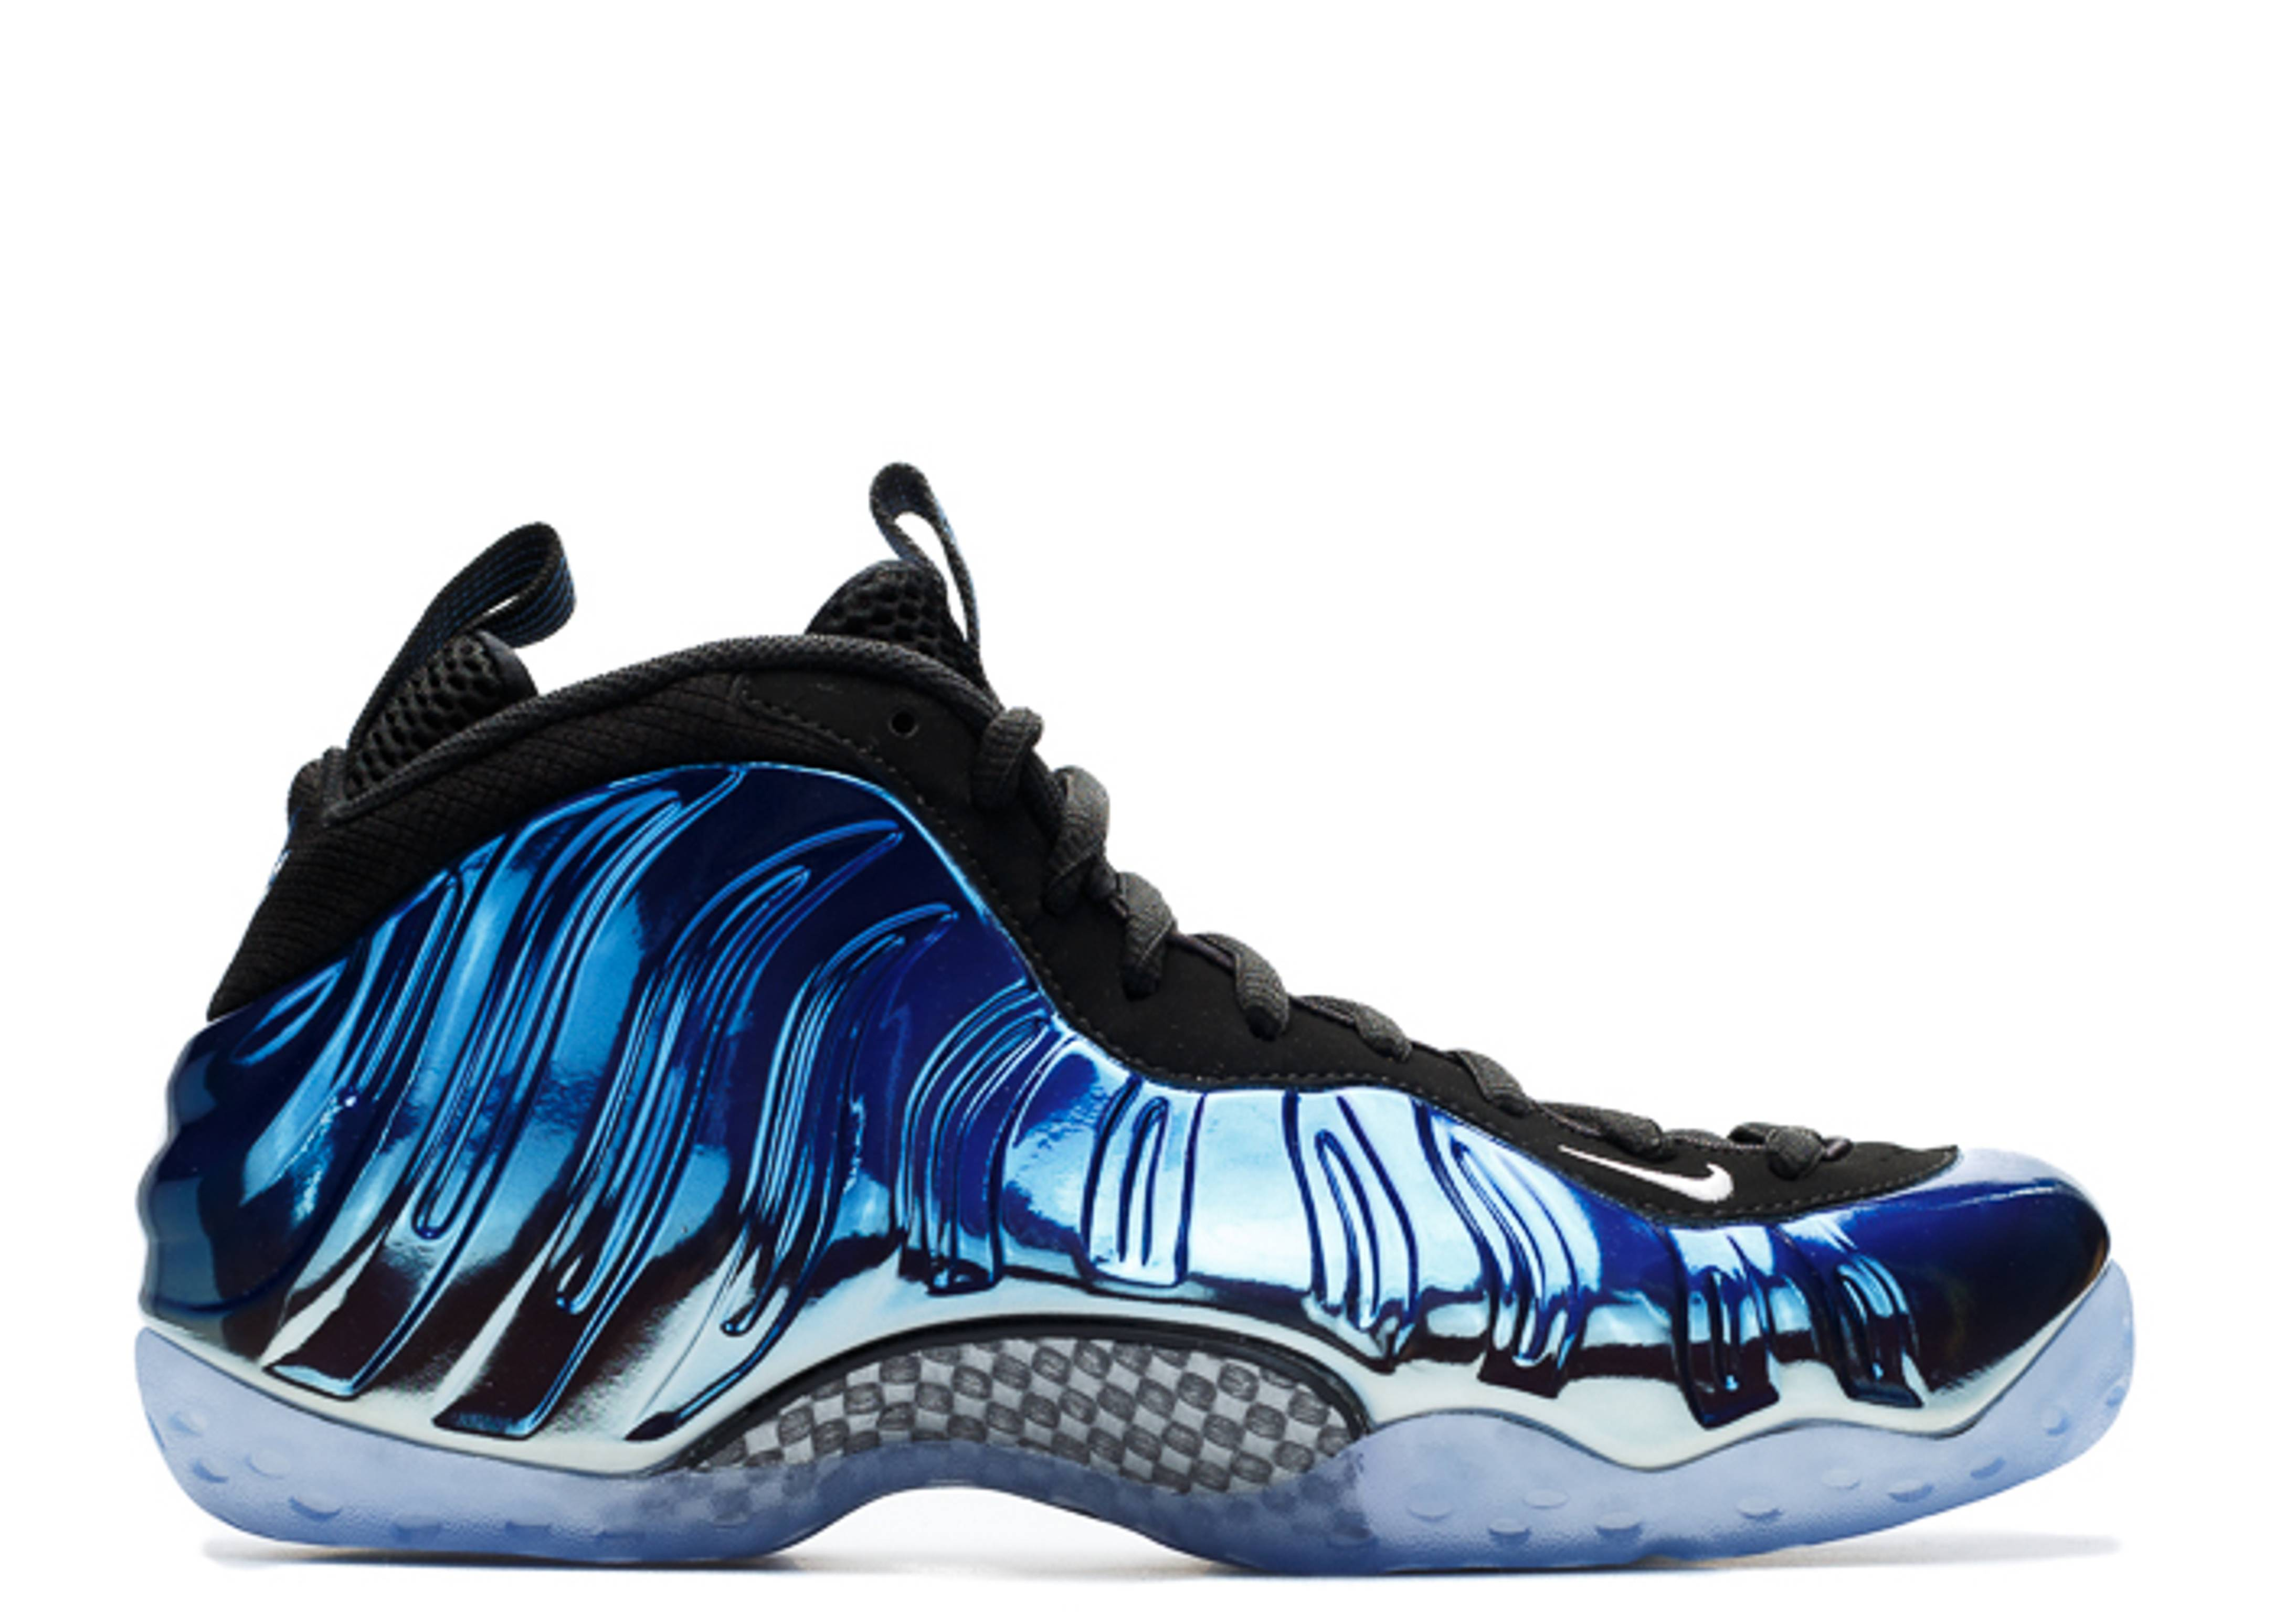 Nike Women Air Foamposite One Glitter Obsidian Sneakers ...